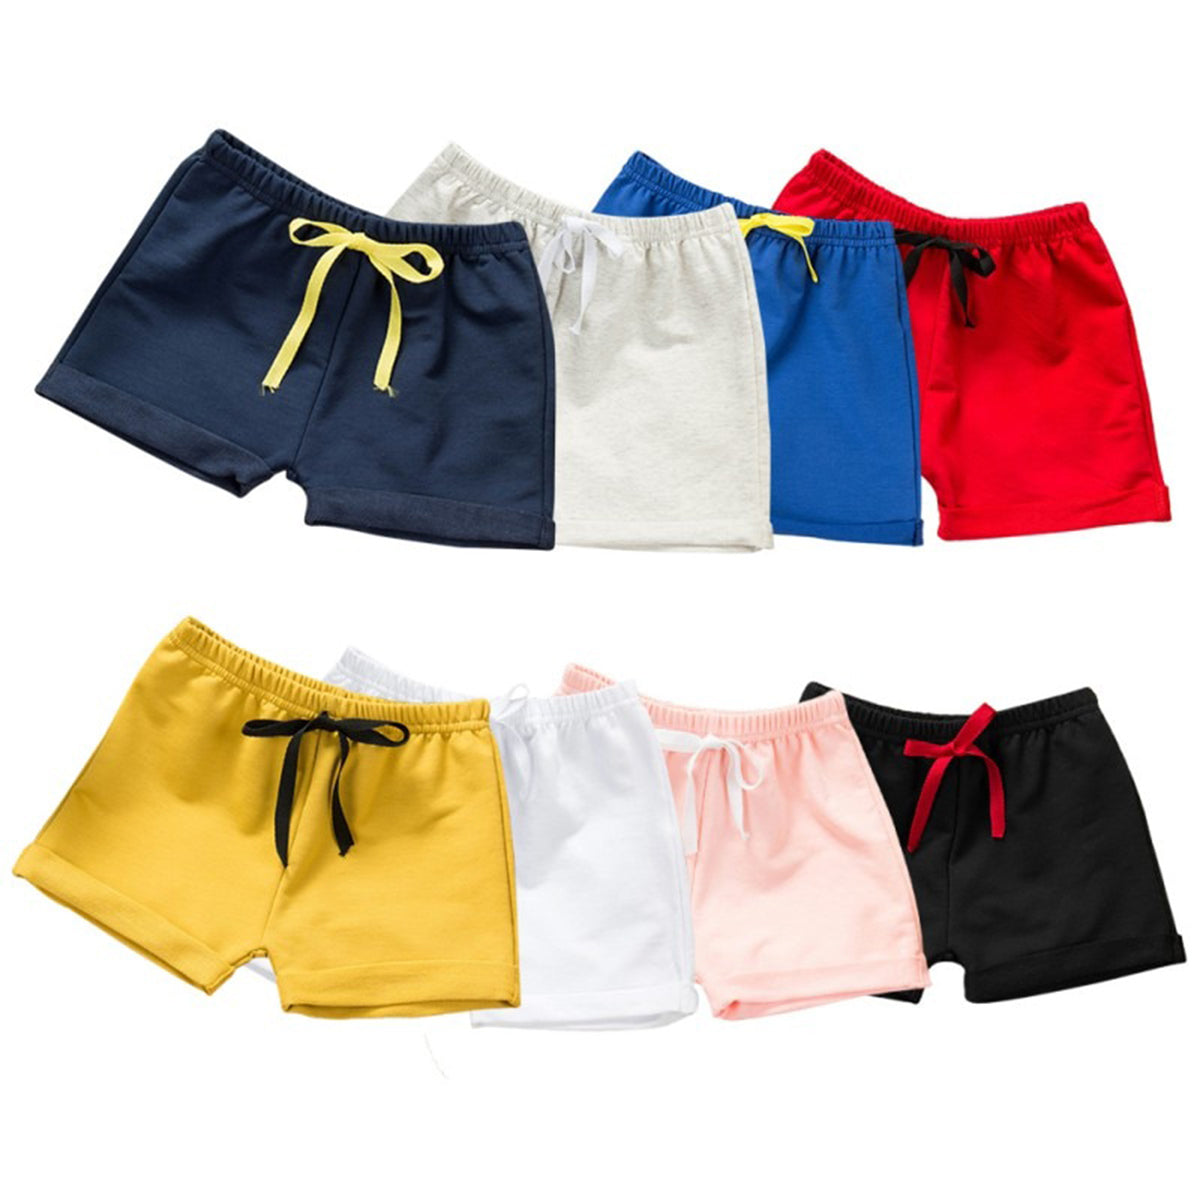 Kids Short Pants for Summer Season